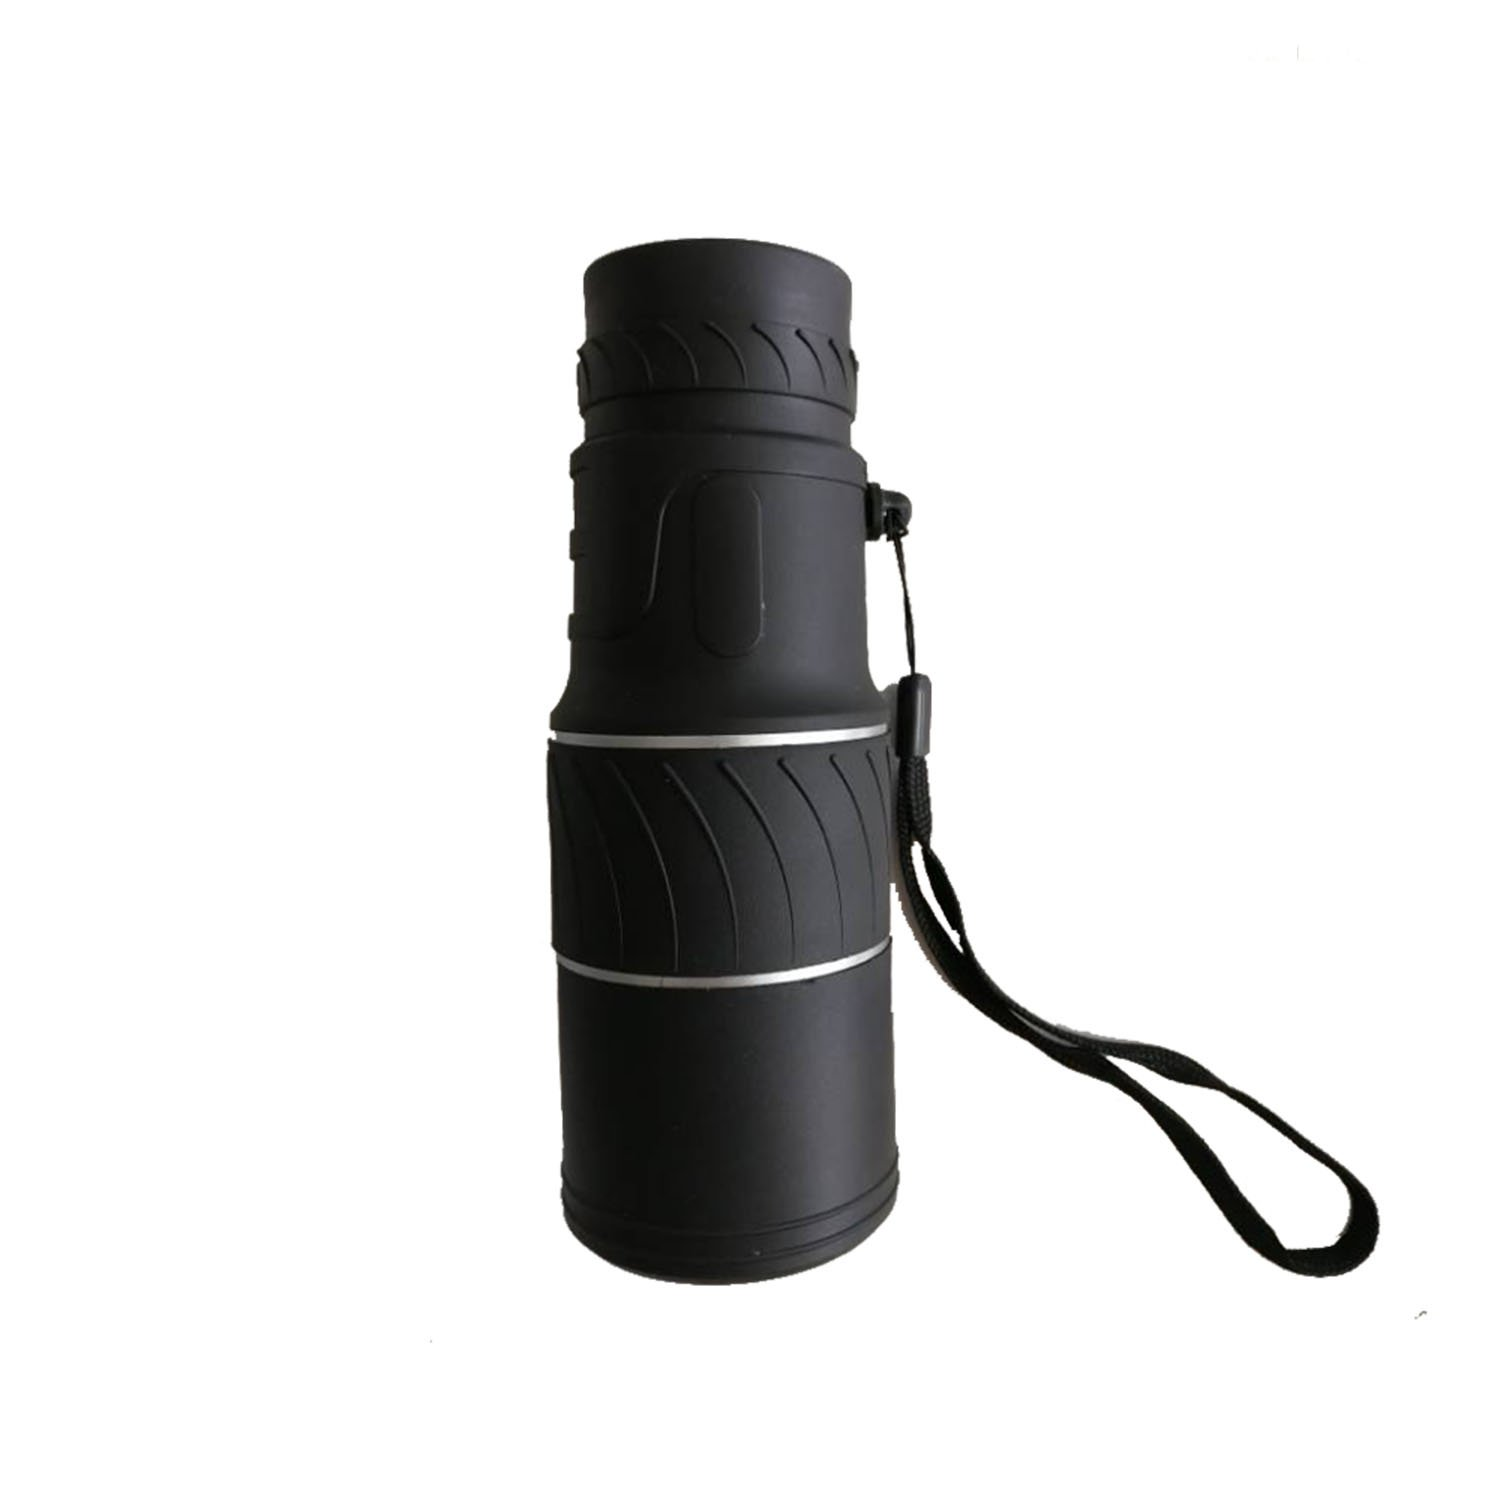 BOW 16x52 Zoom Black Waterproof Optical Monocular Telescope for Outdoor Camping Travel Taking Photos